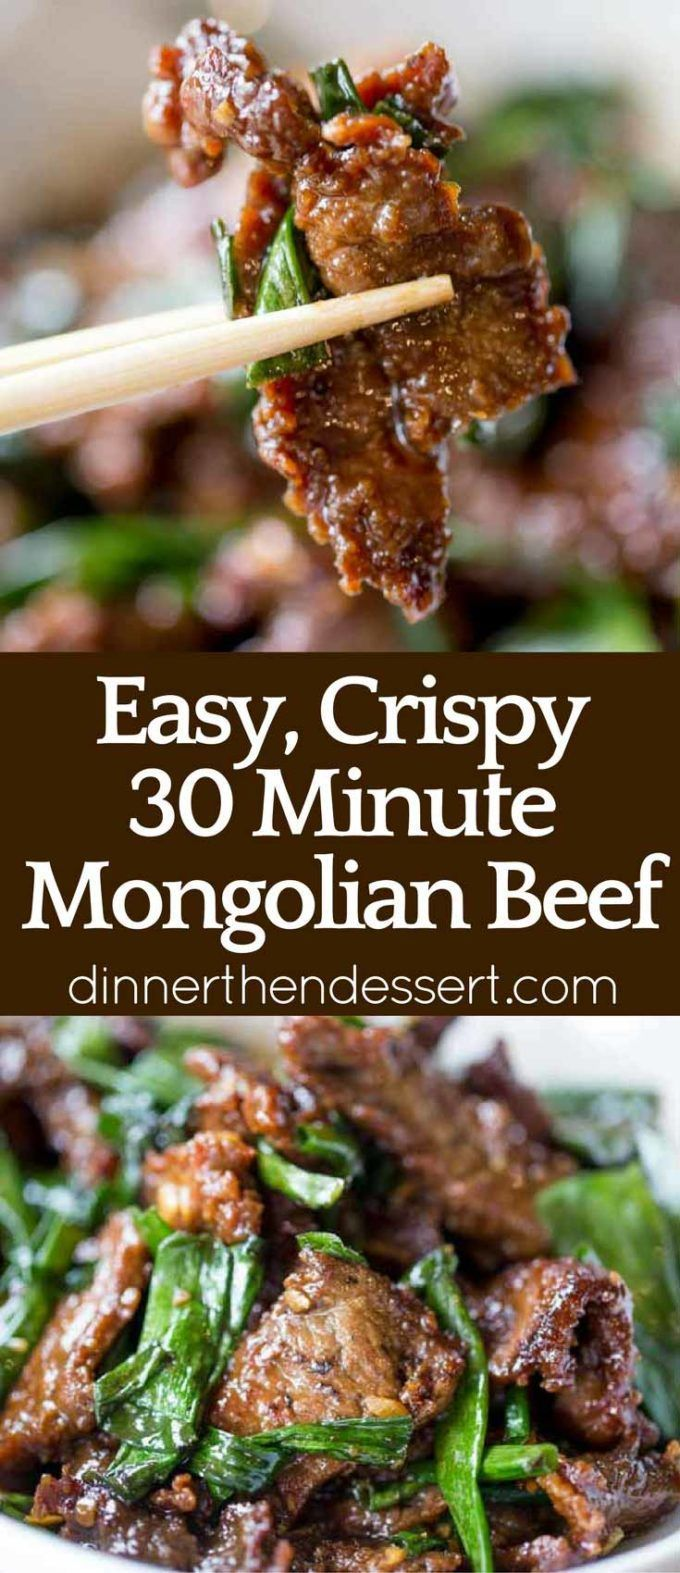 Mongolian Beef that's easy to make in just 30 minutes, crispy, sweet and ful...